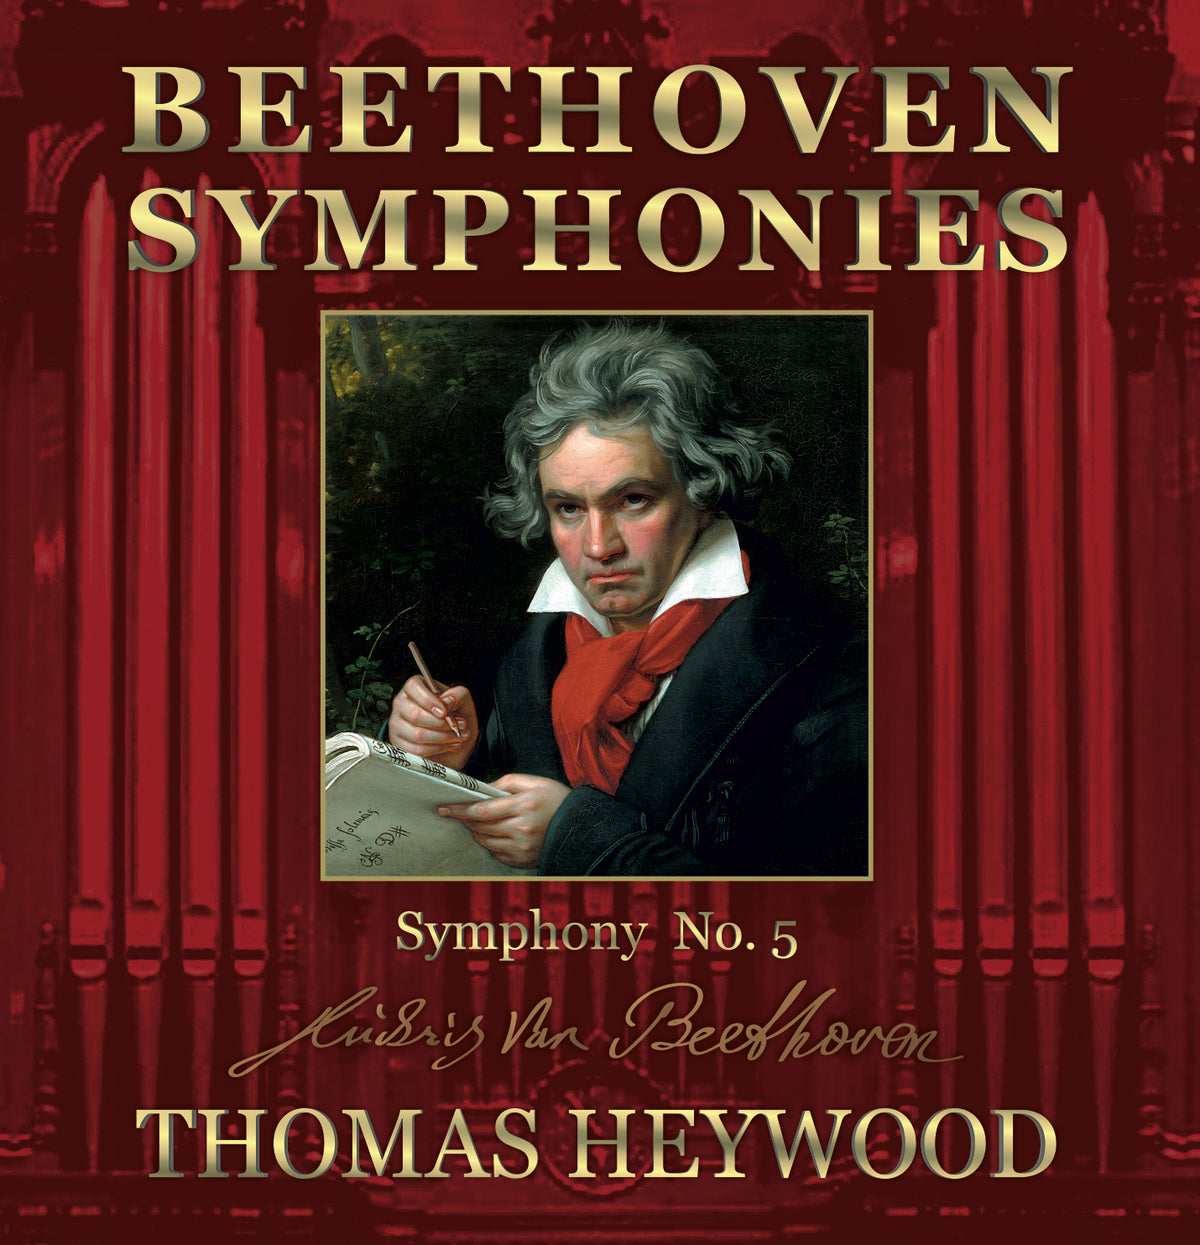 Beethoven/Heywood - Symphony No. 5 in C minor, Op. 67 (MP3 Album) | Thomas Heywood | Concert Organ International